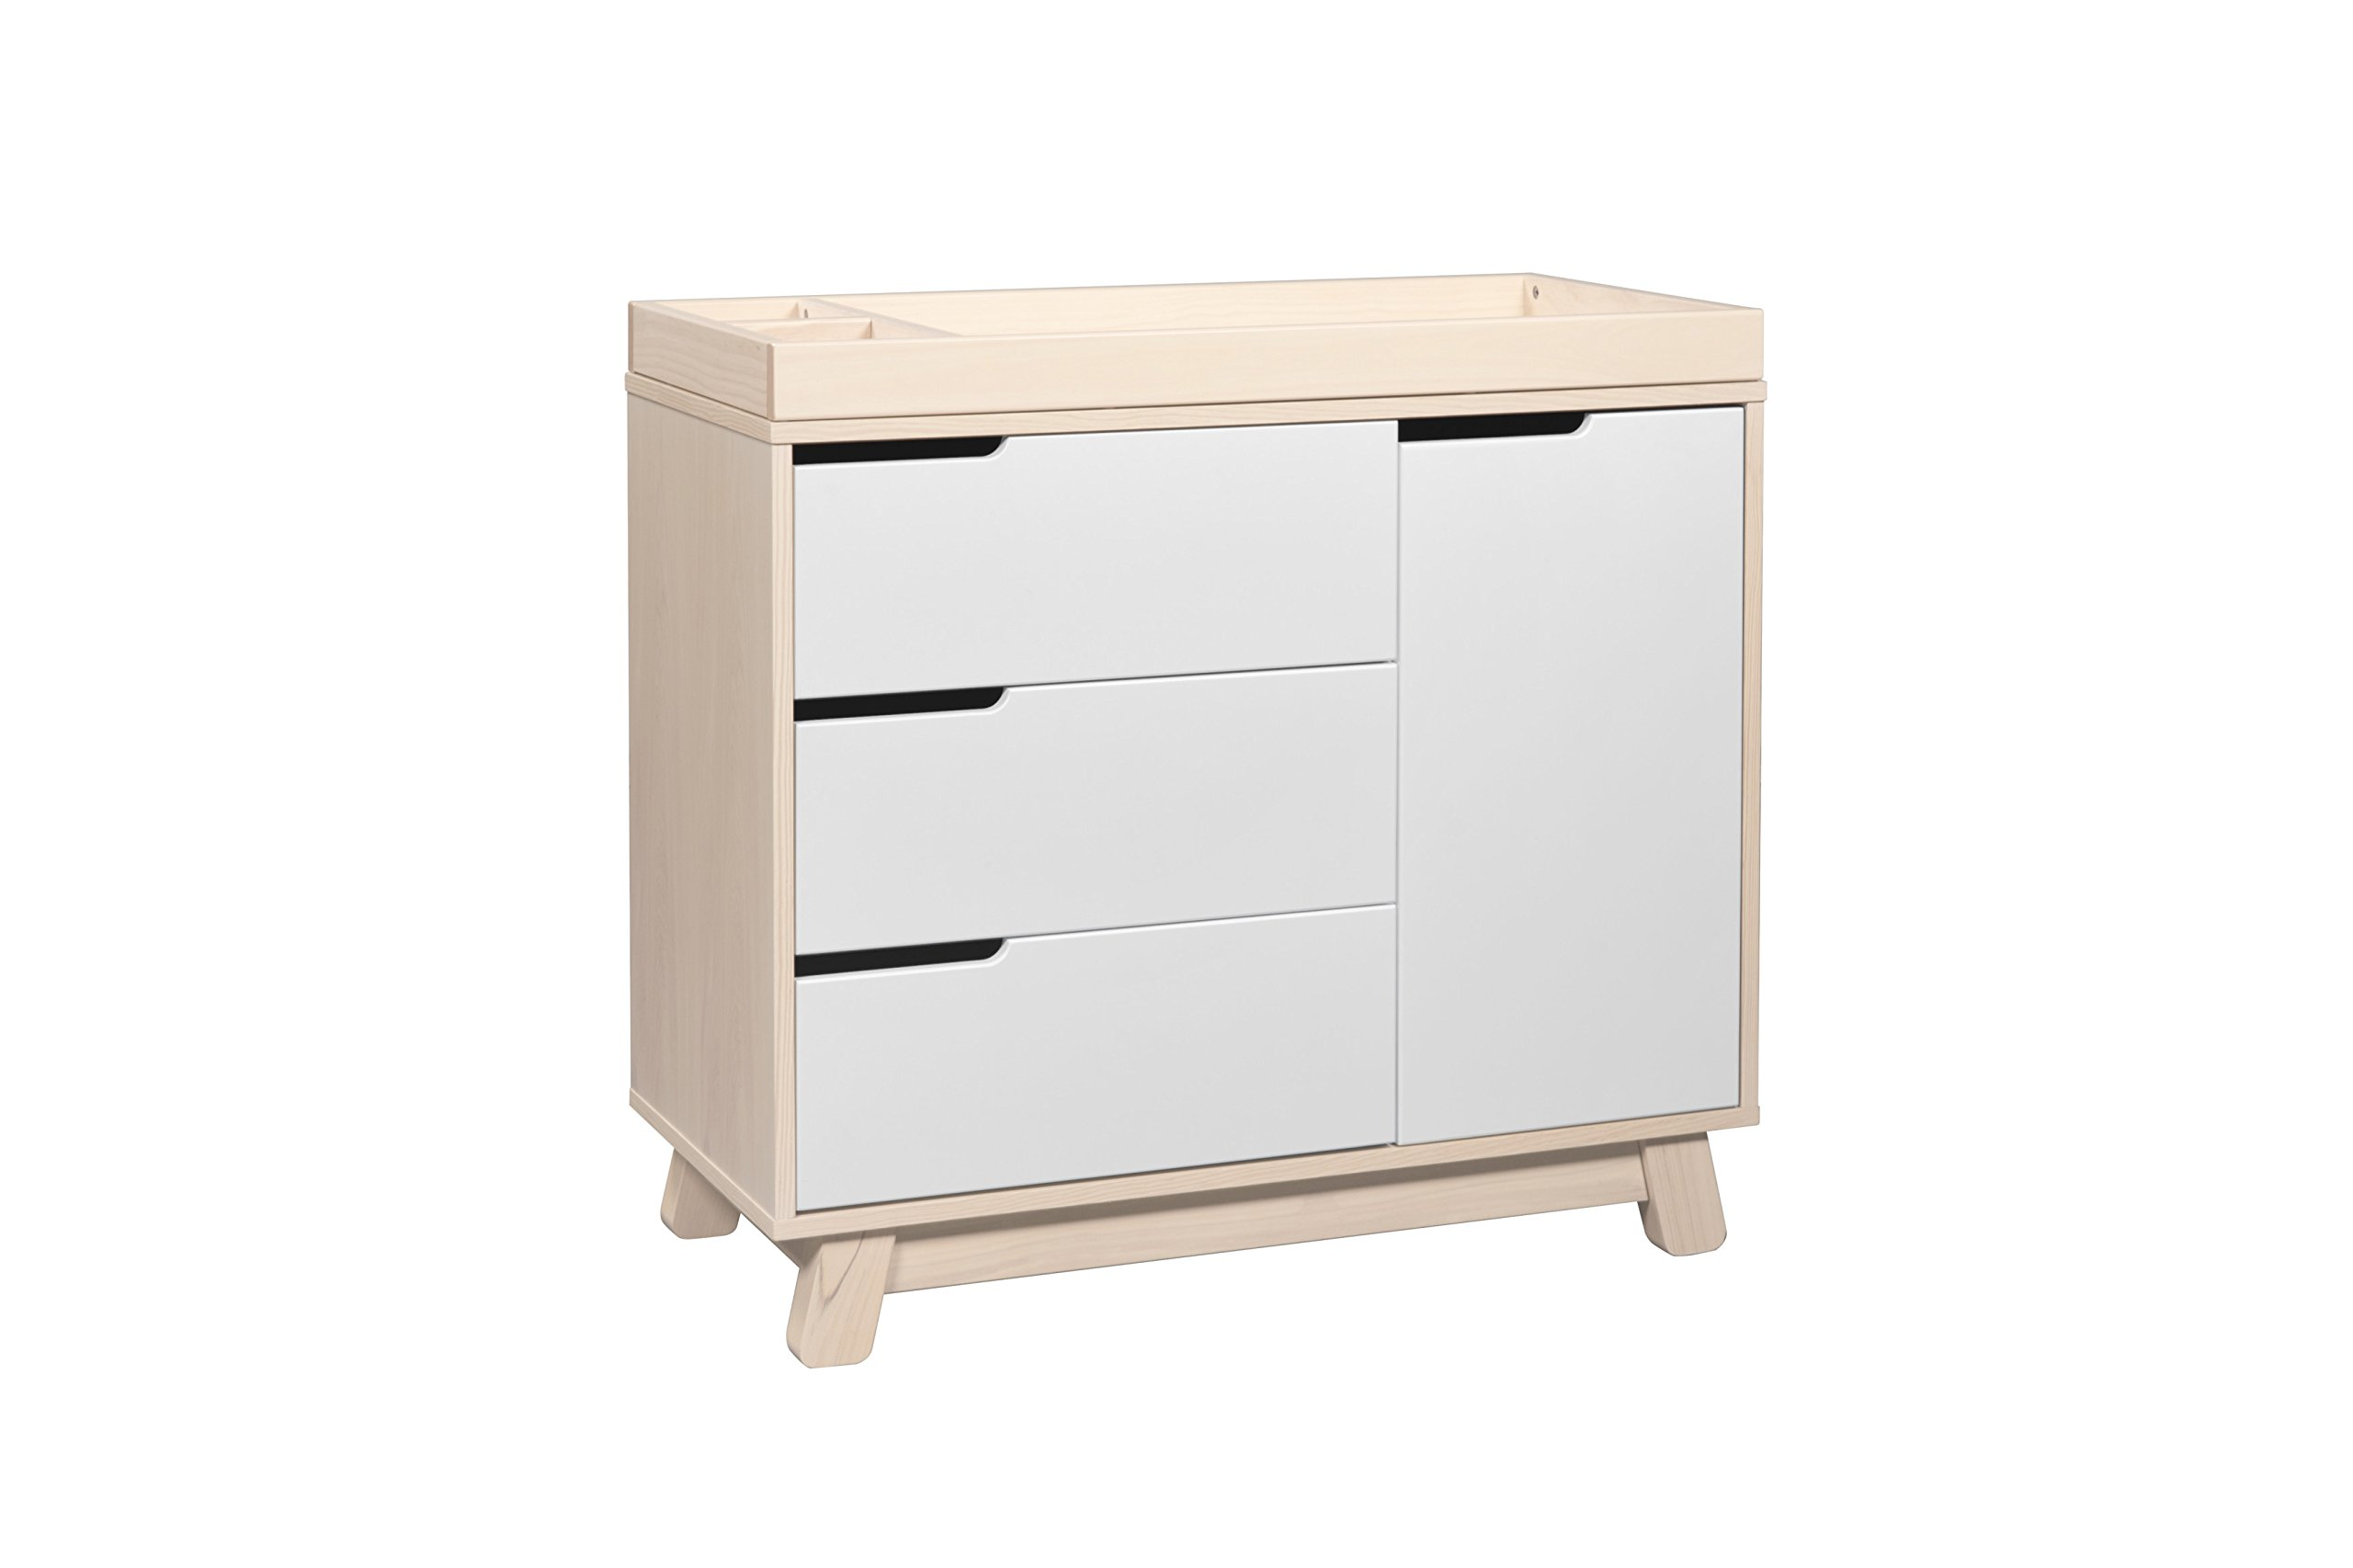 Babyletto Hudson 3-Drawer Changer Dresser with Removable Changing Tray, Washed Natural / White